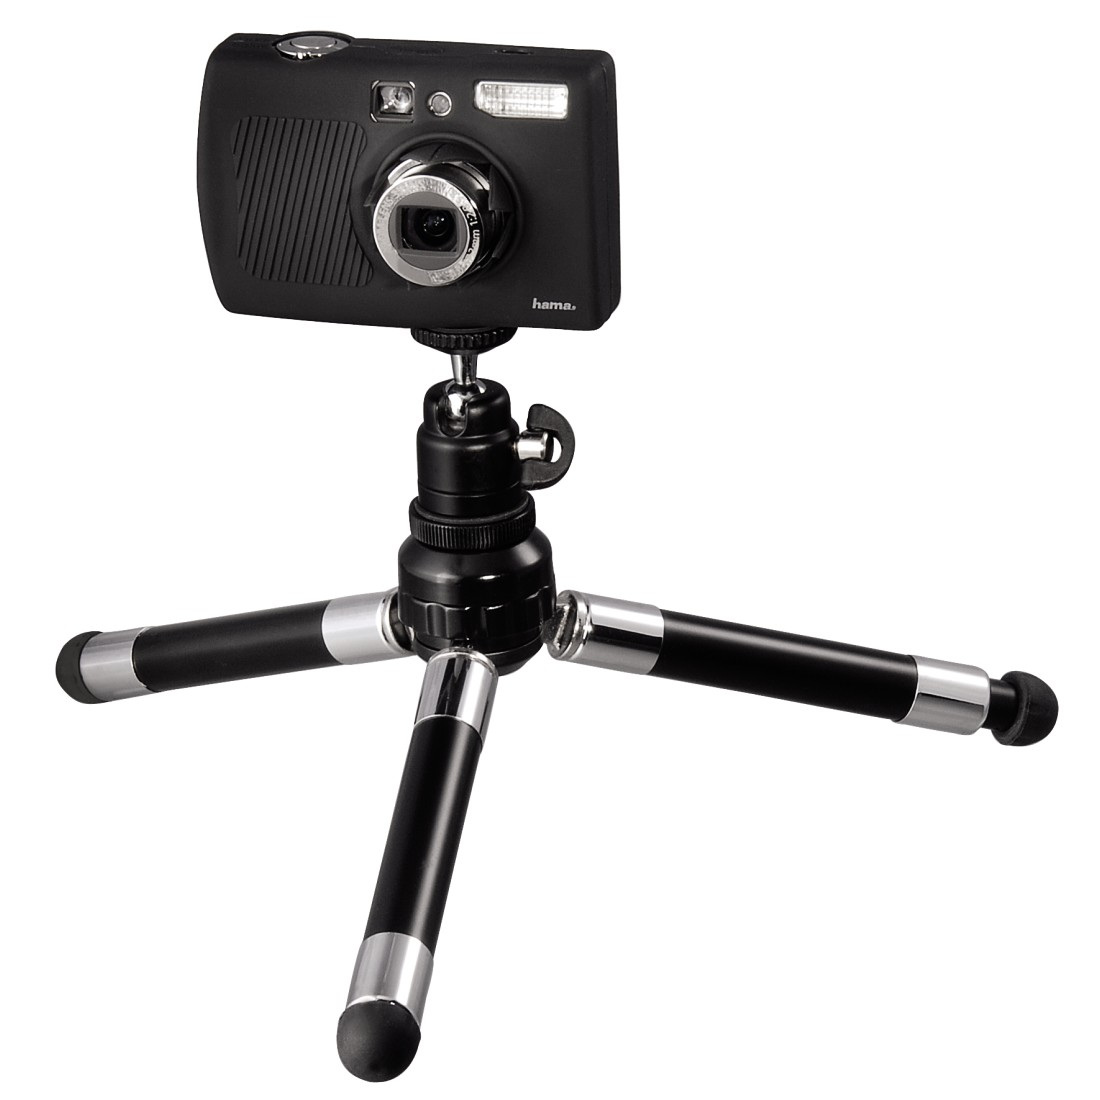 awx5 High-Res Appliance 5 - Hama, Traveller Multi Table Top Tripod, with Removable Telescopic Tube